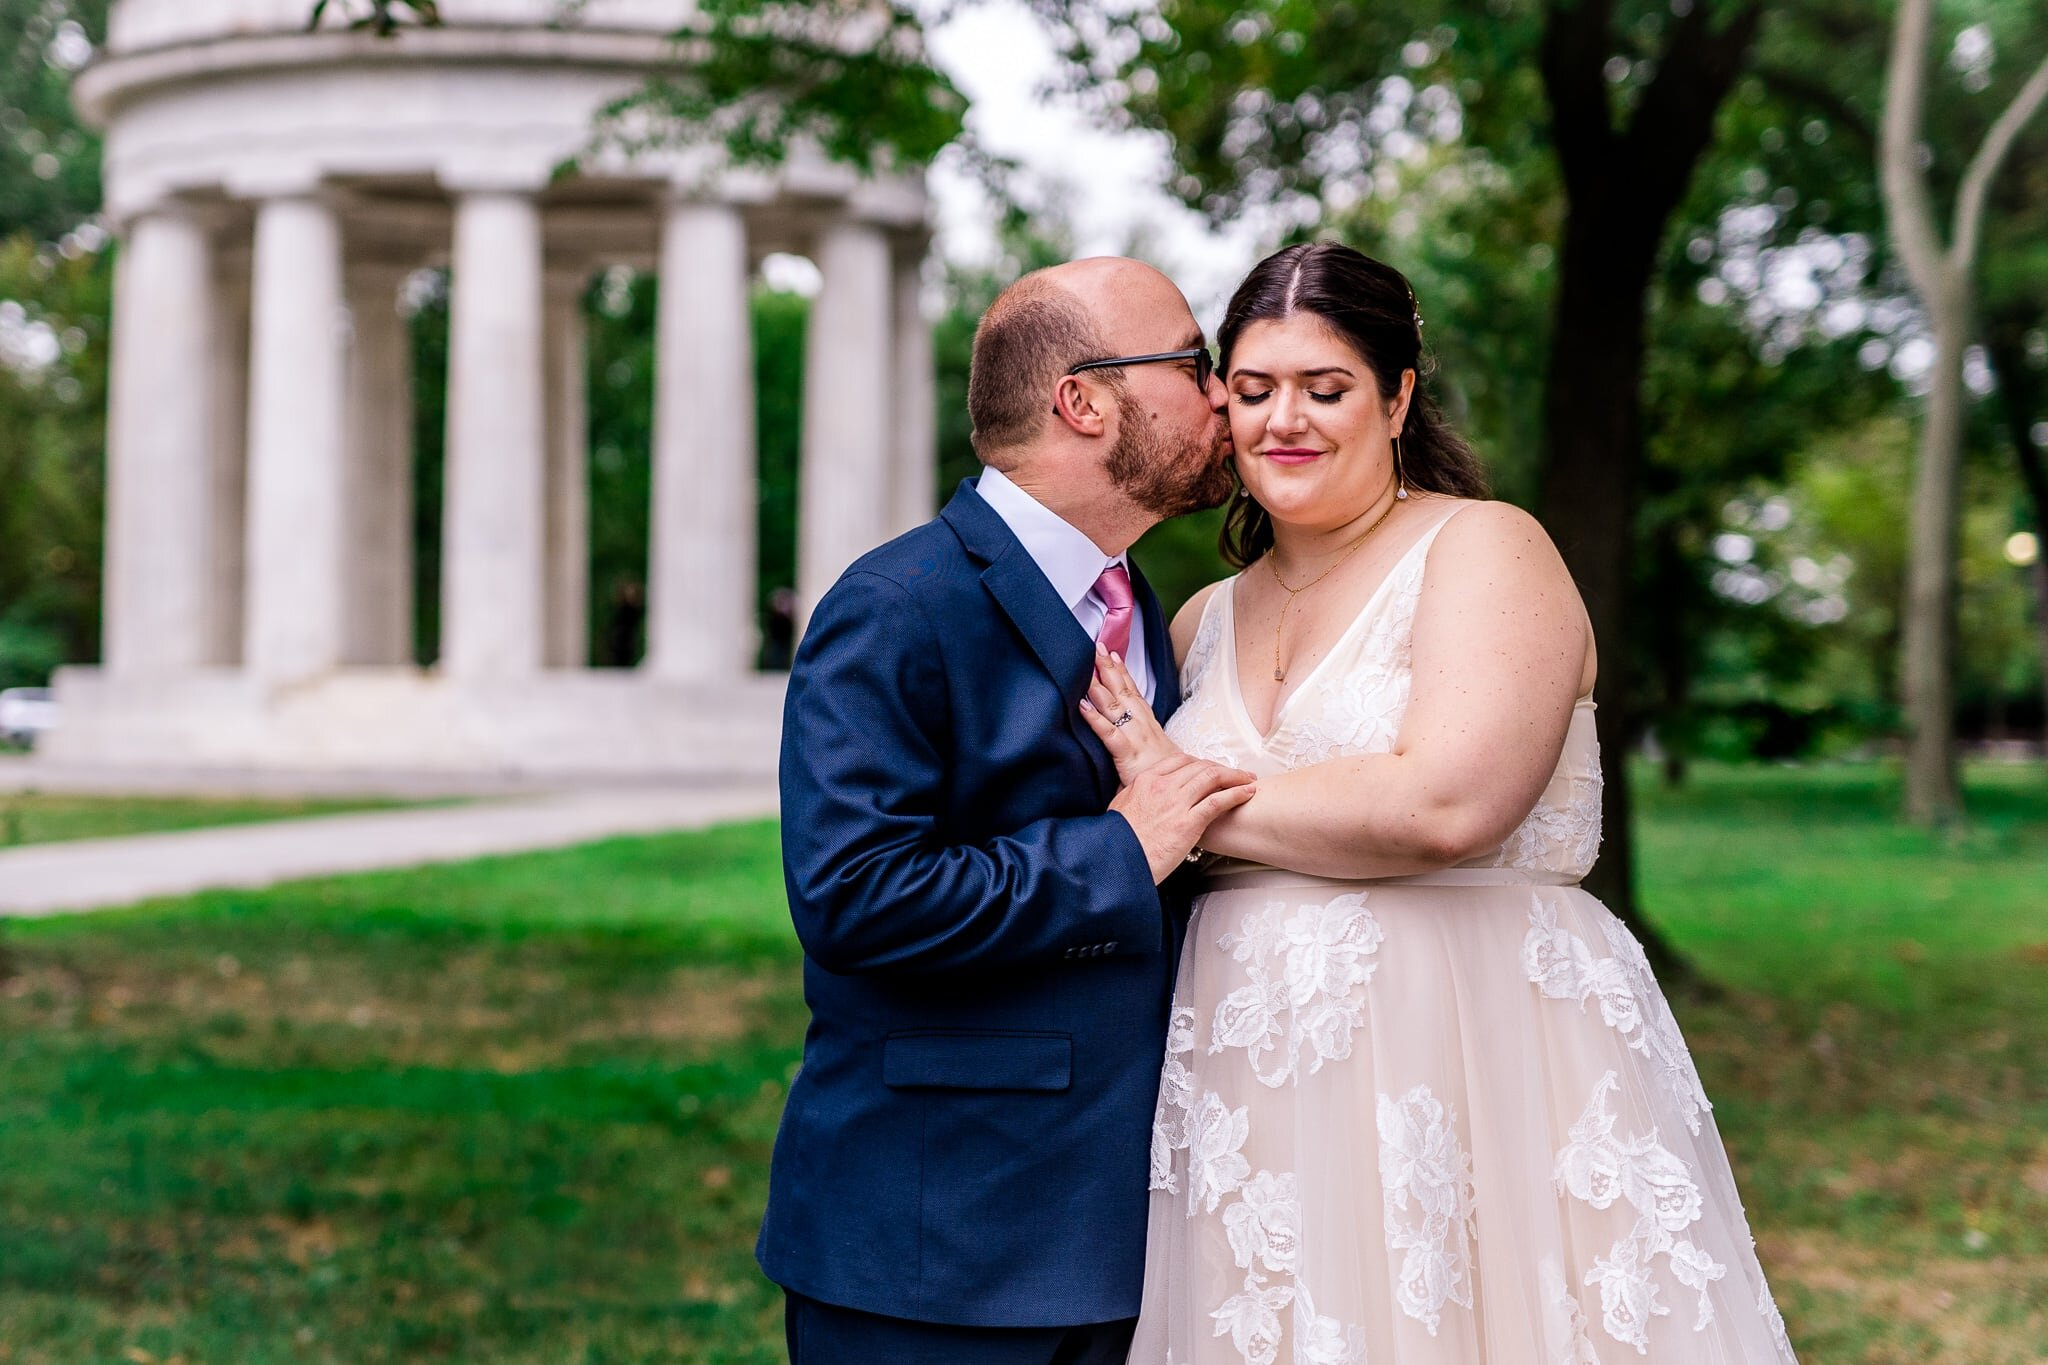 A groom kisses his bride on the cheek on their fall wedding day in front of the DC War Memorial in Washington, DC